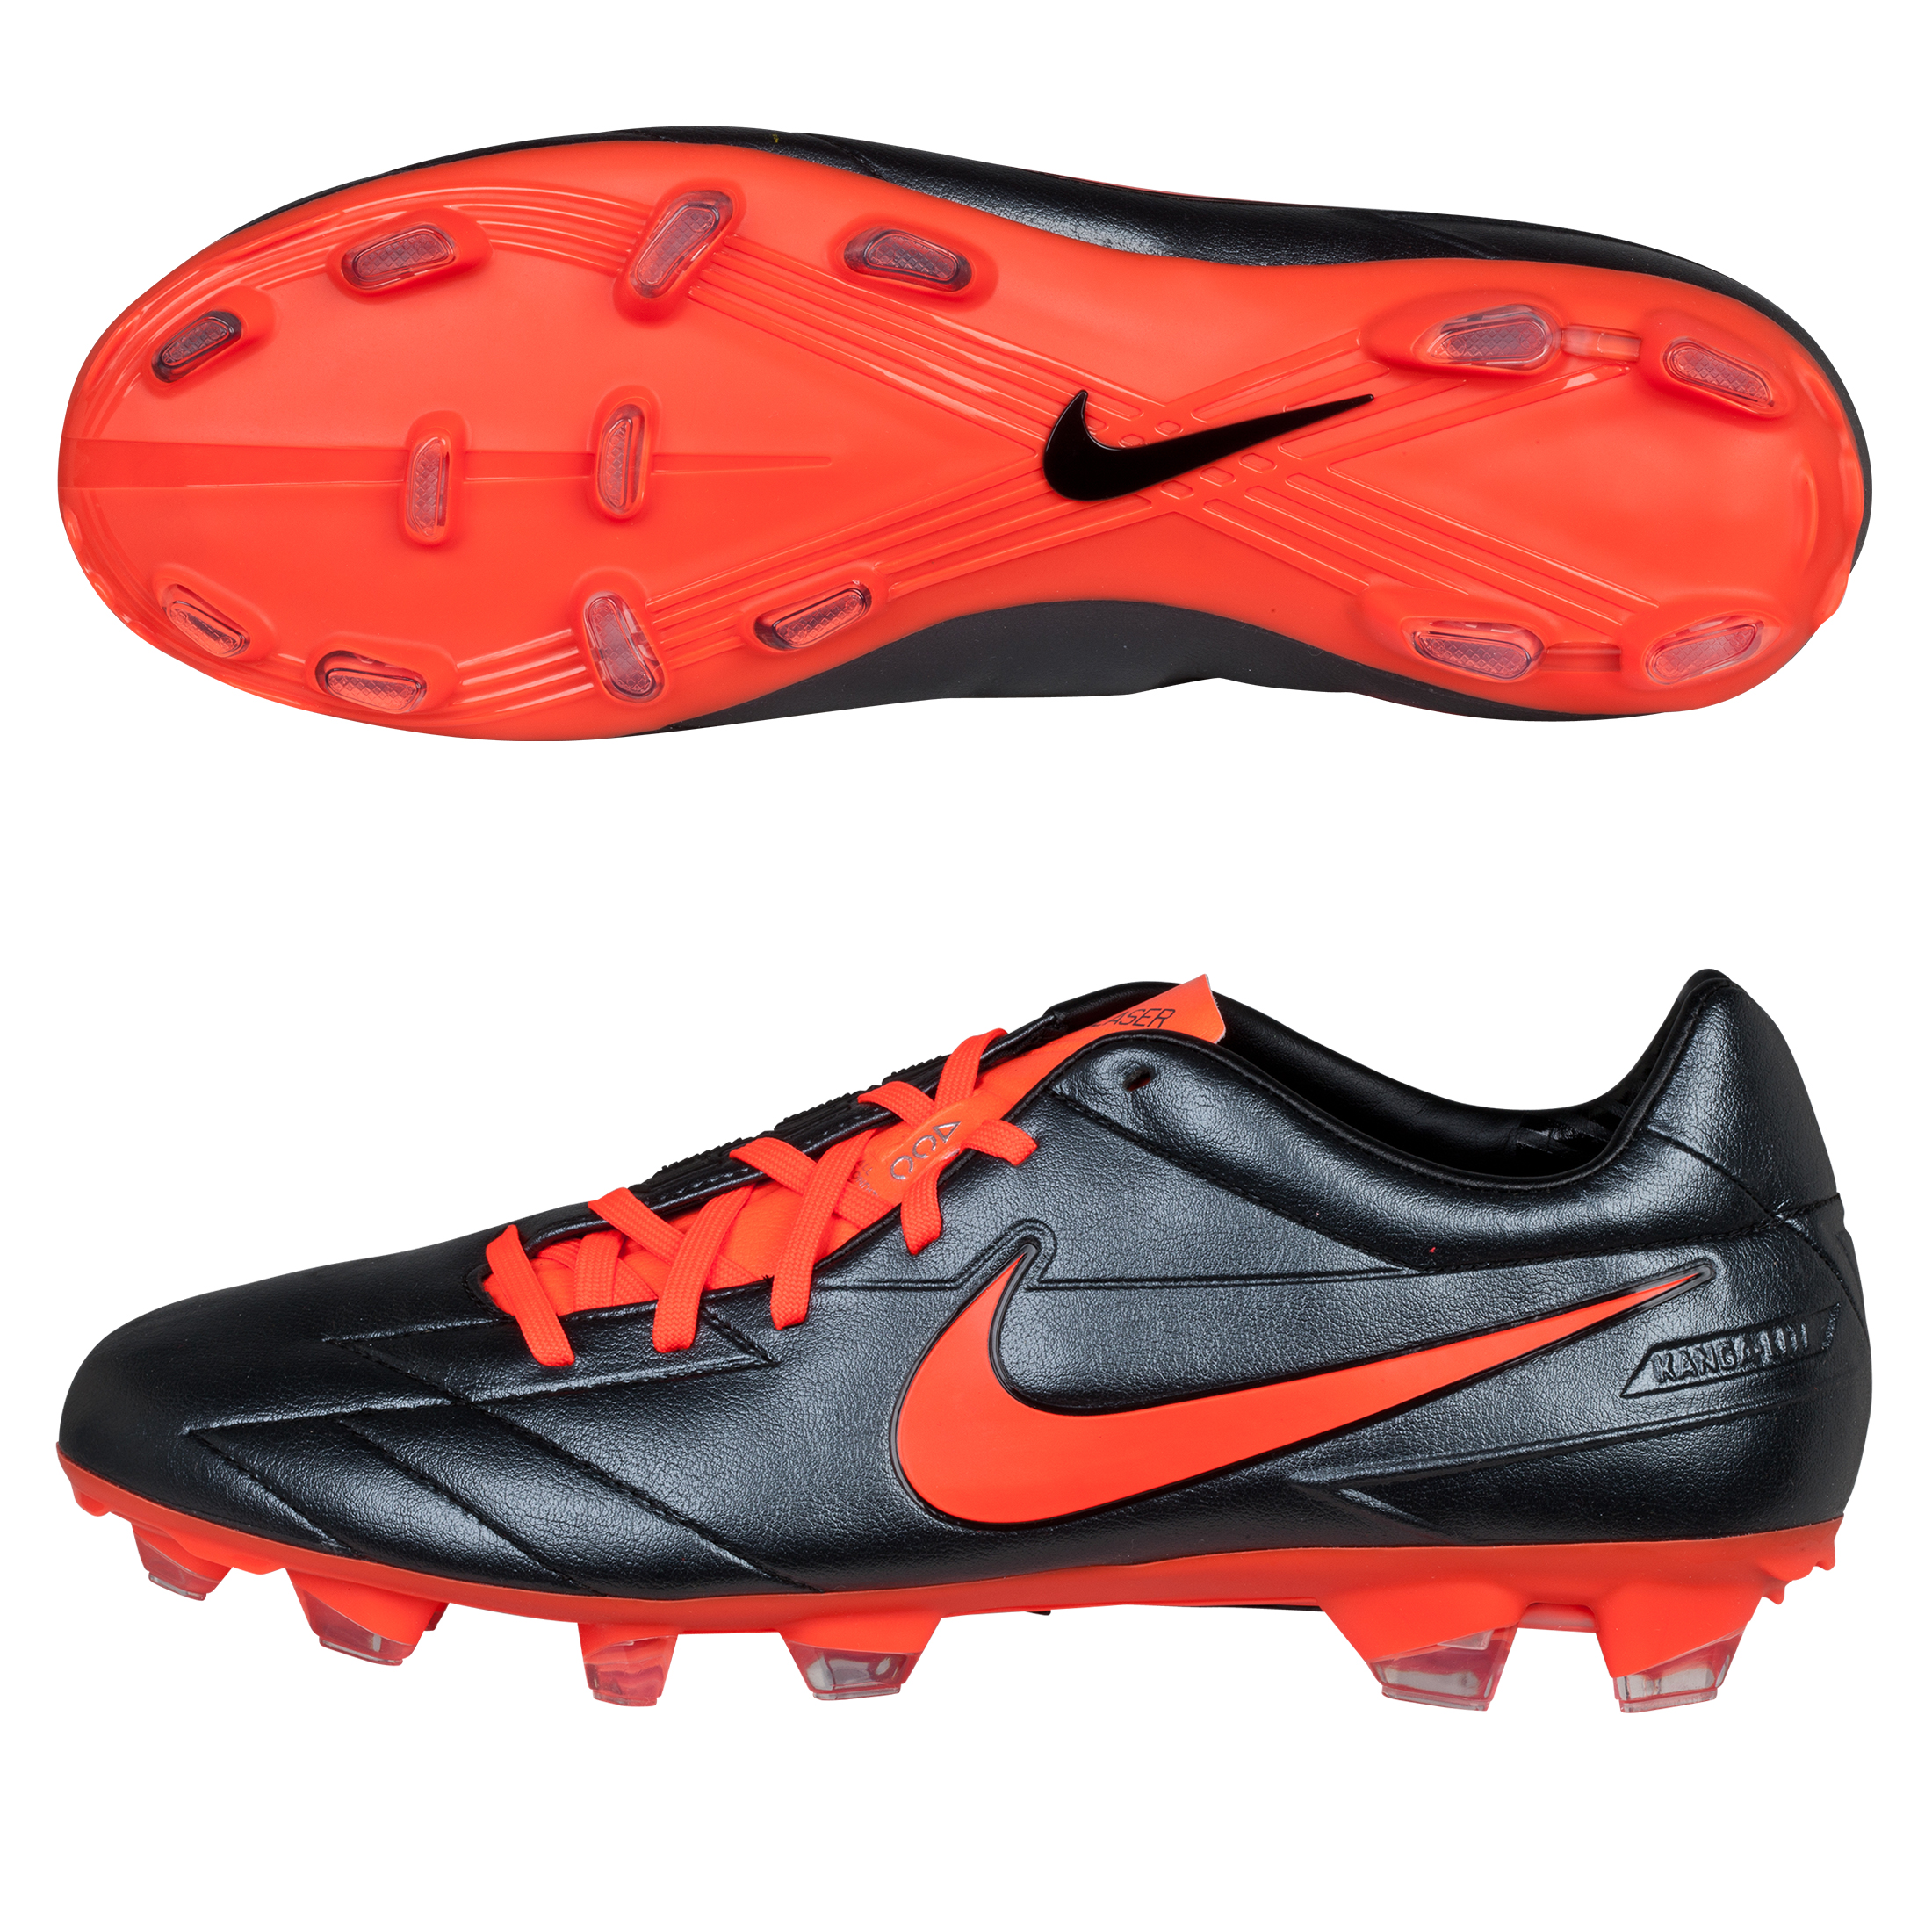 Nike Total90 Laser IV KL-Firm Ground Black/Total Crimson/Black